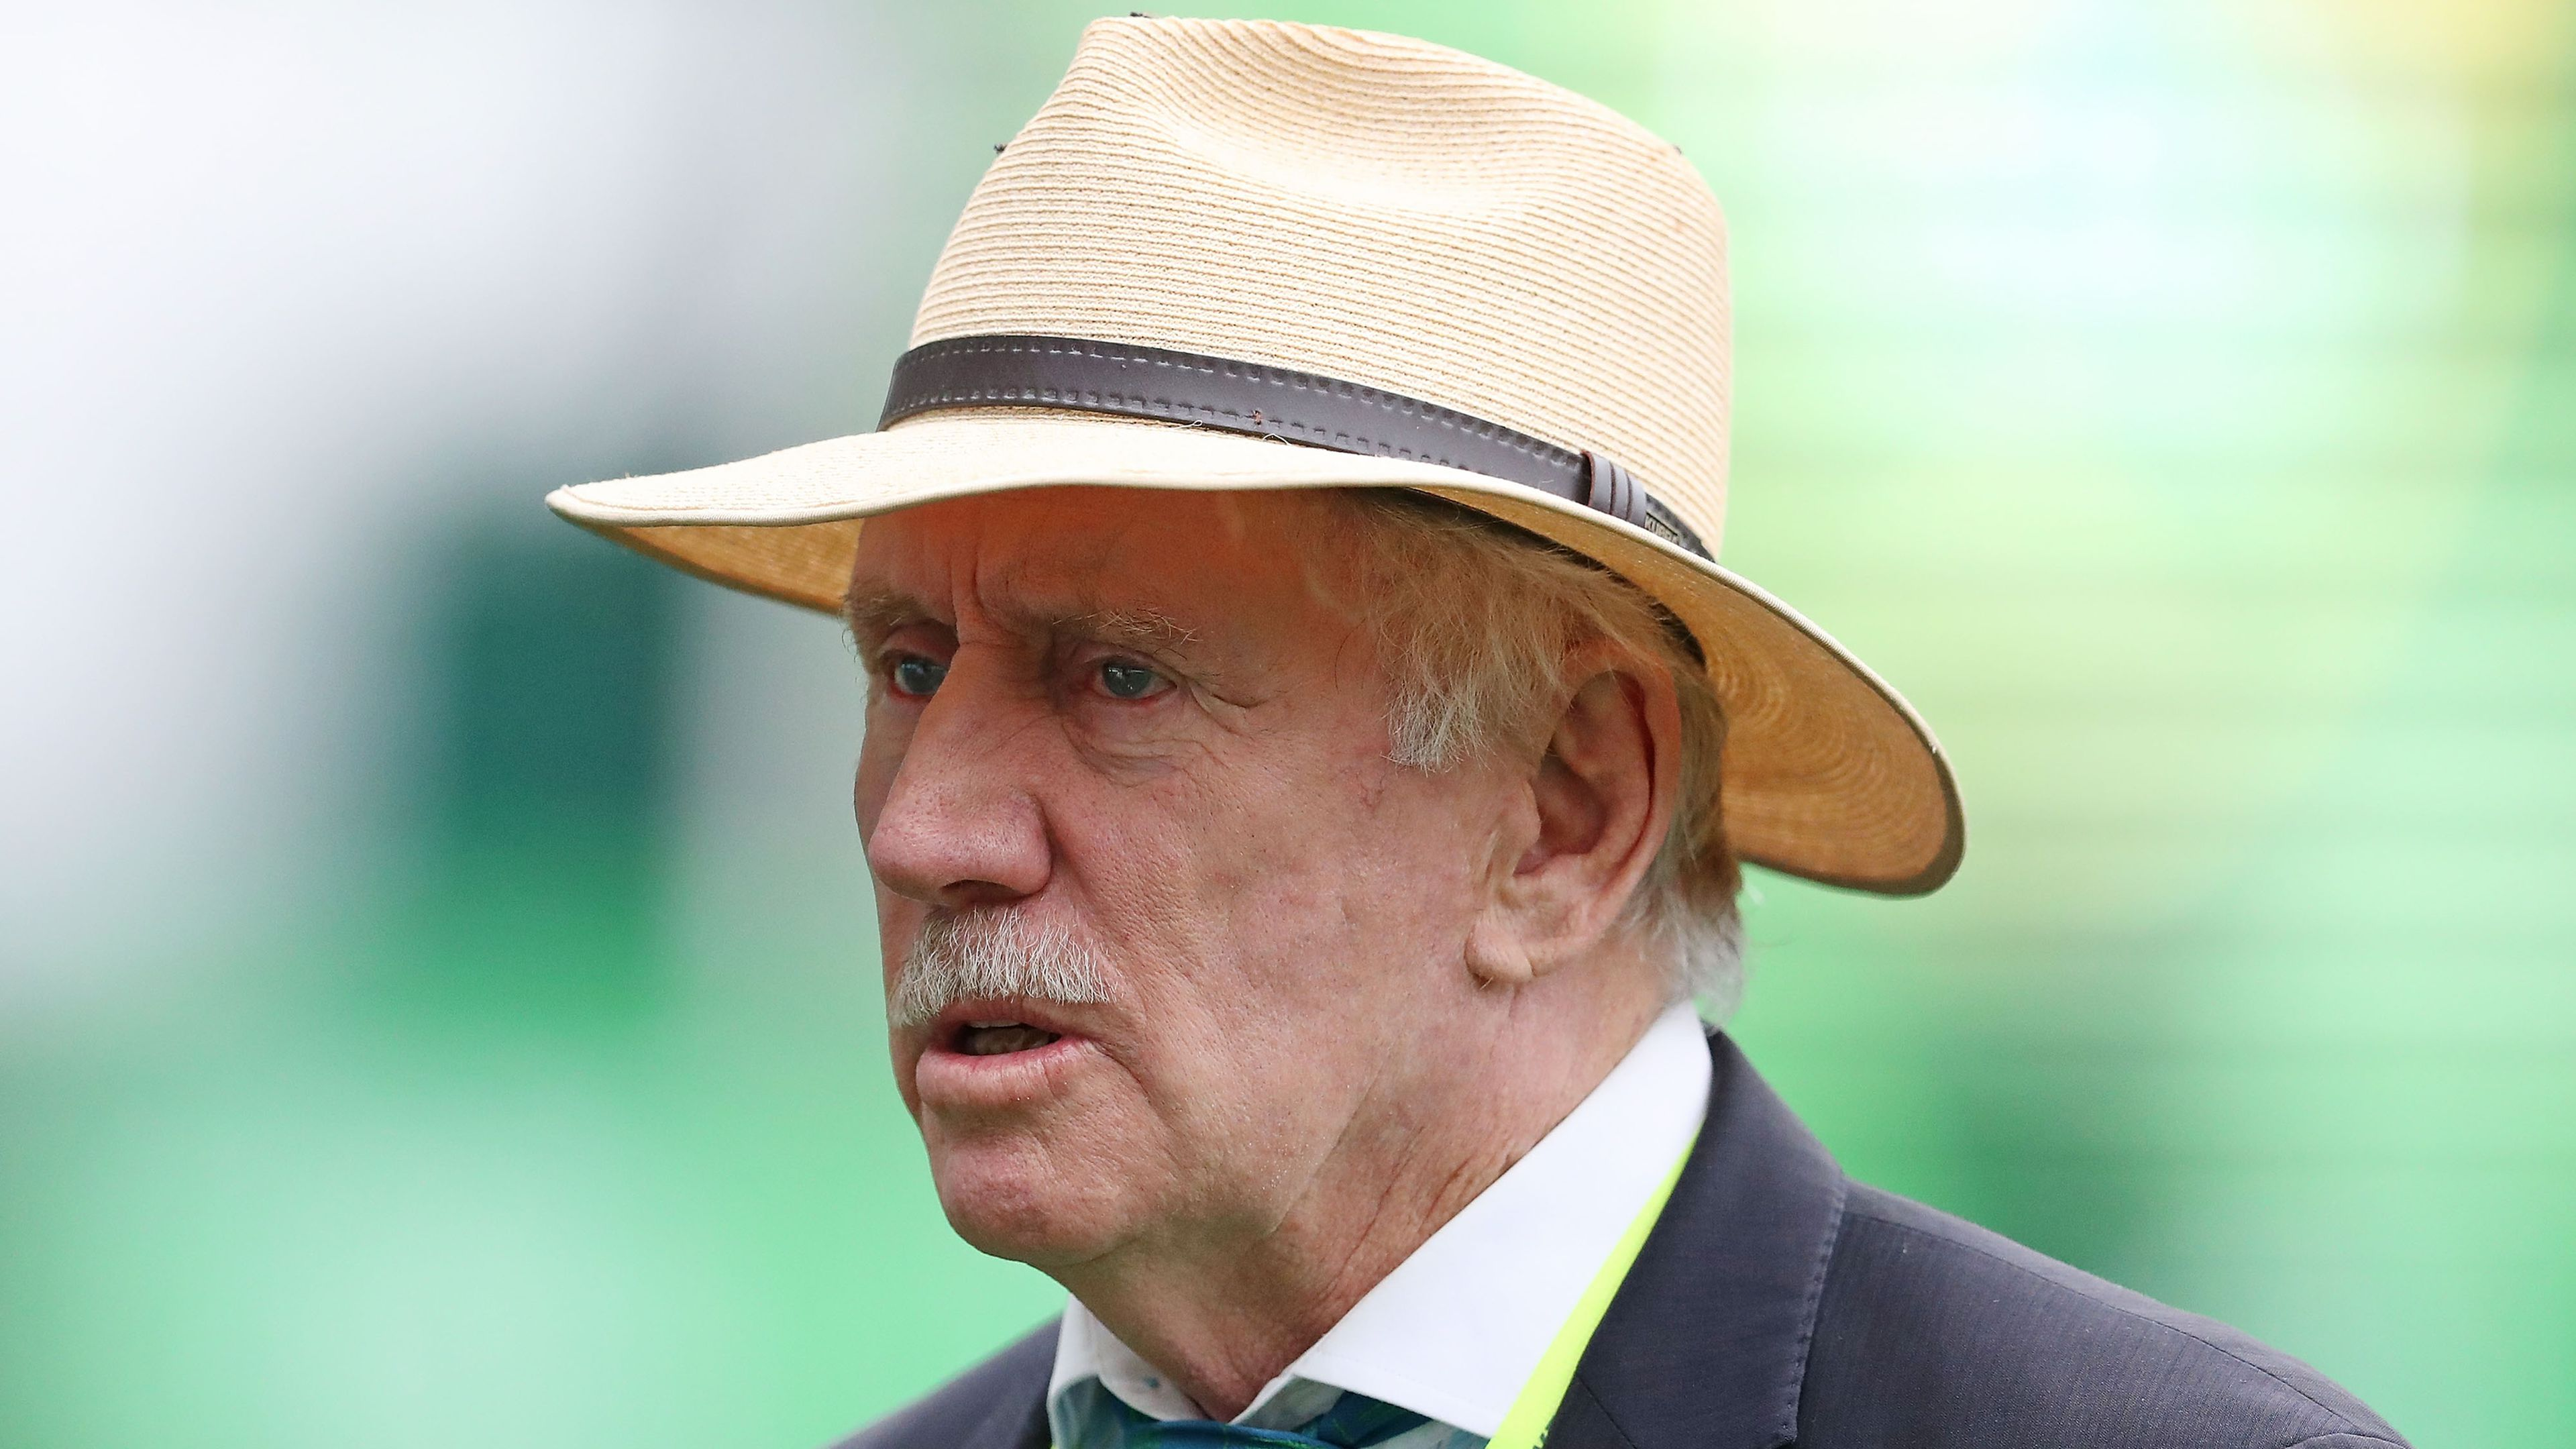 EXCLUSIVE: Cricket legend Ian Chappell in limbo despite receiving negative COVID-19 test result